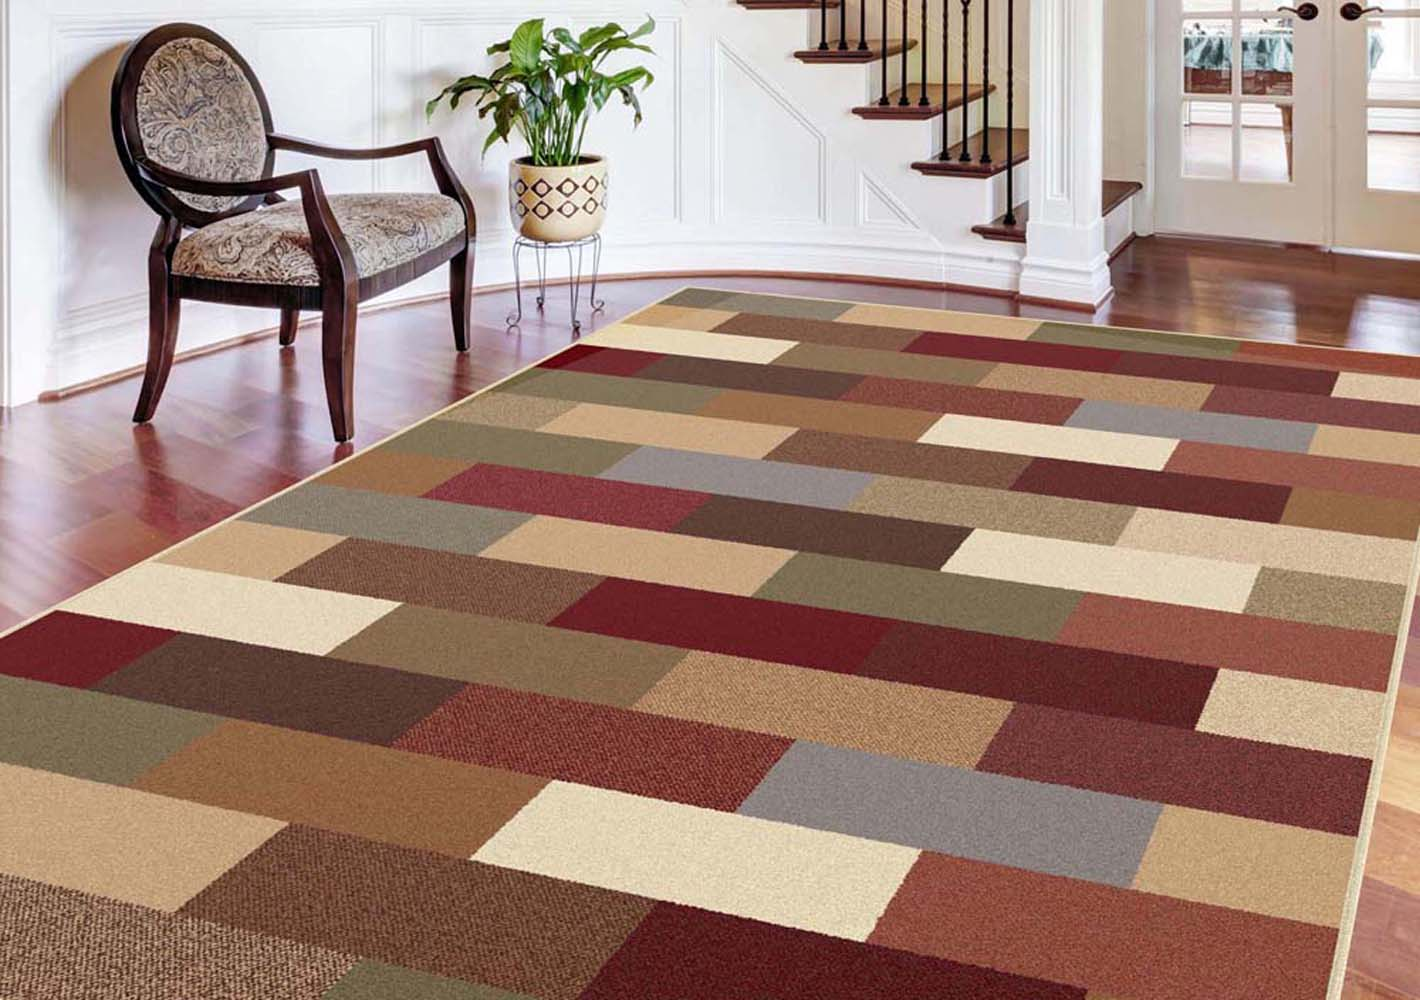 CONTEMPORARY green BLUE brown RED geometric AREA rug MODERN boxes